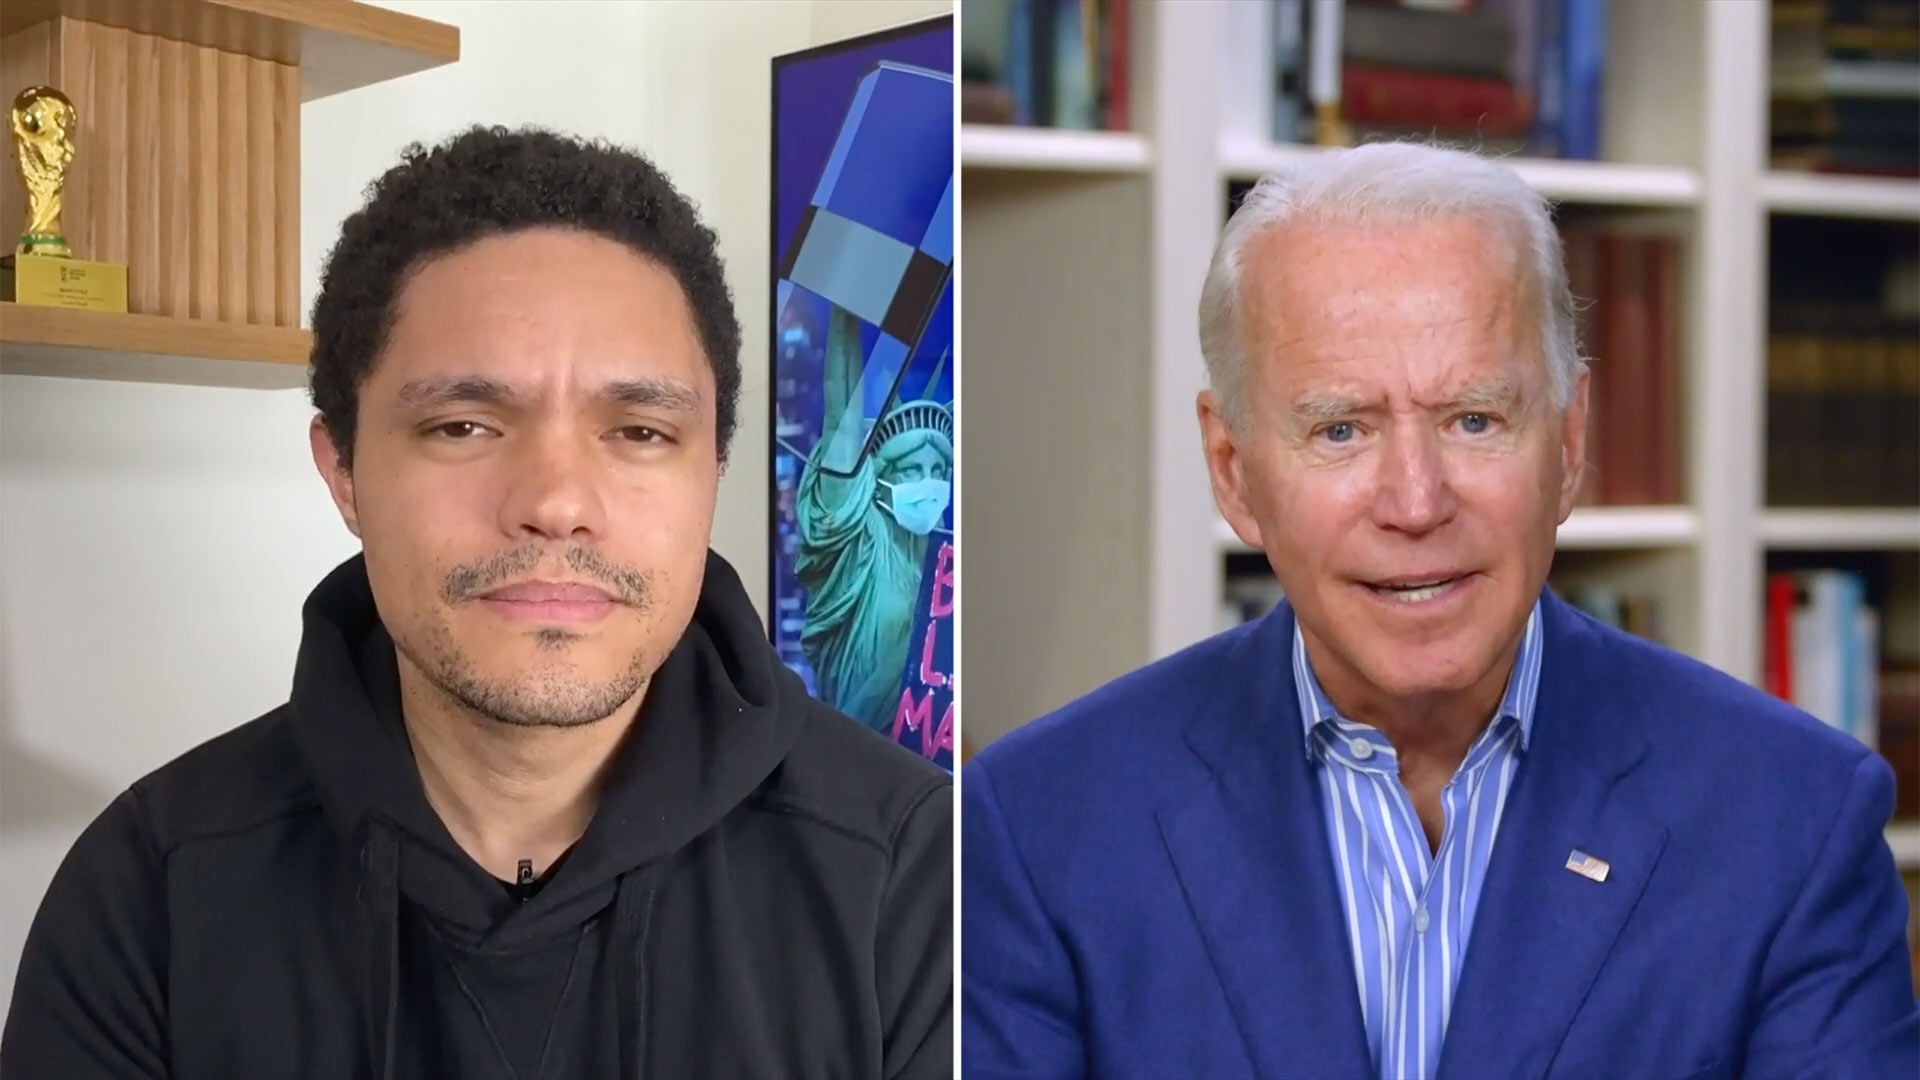 Trevor Noah and Joe Biden